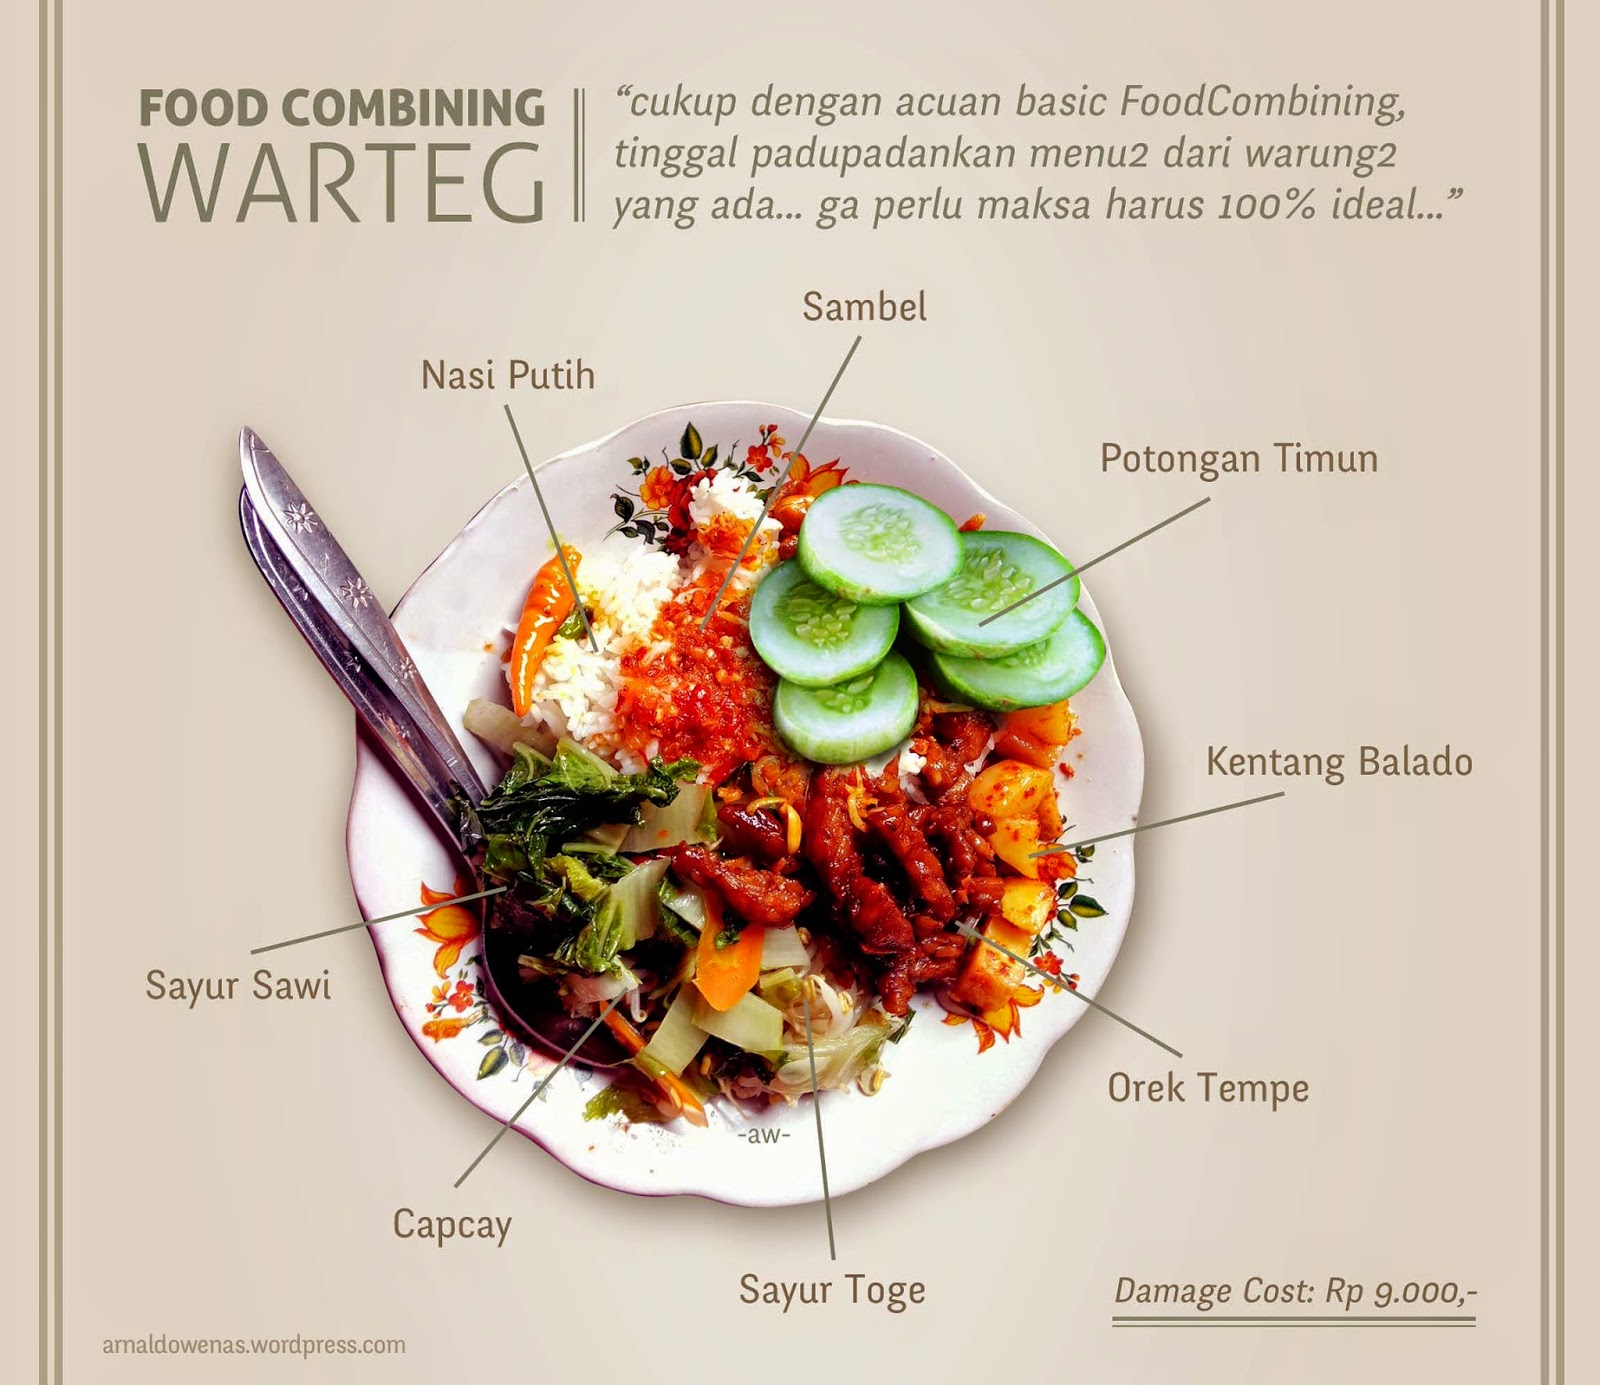 What Is the Food Combining Diet?